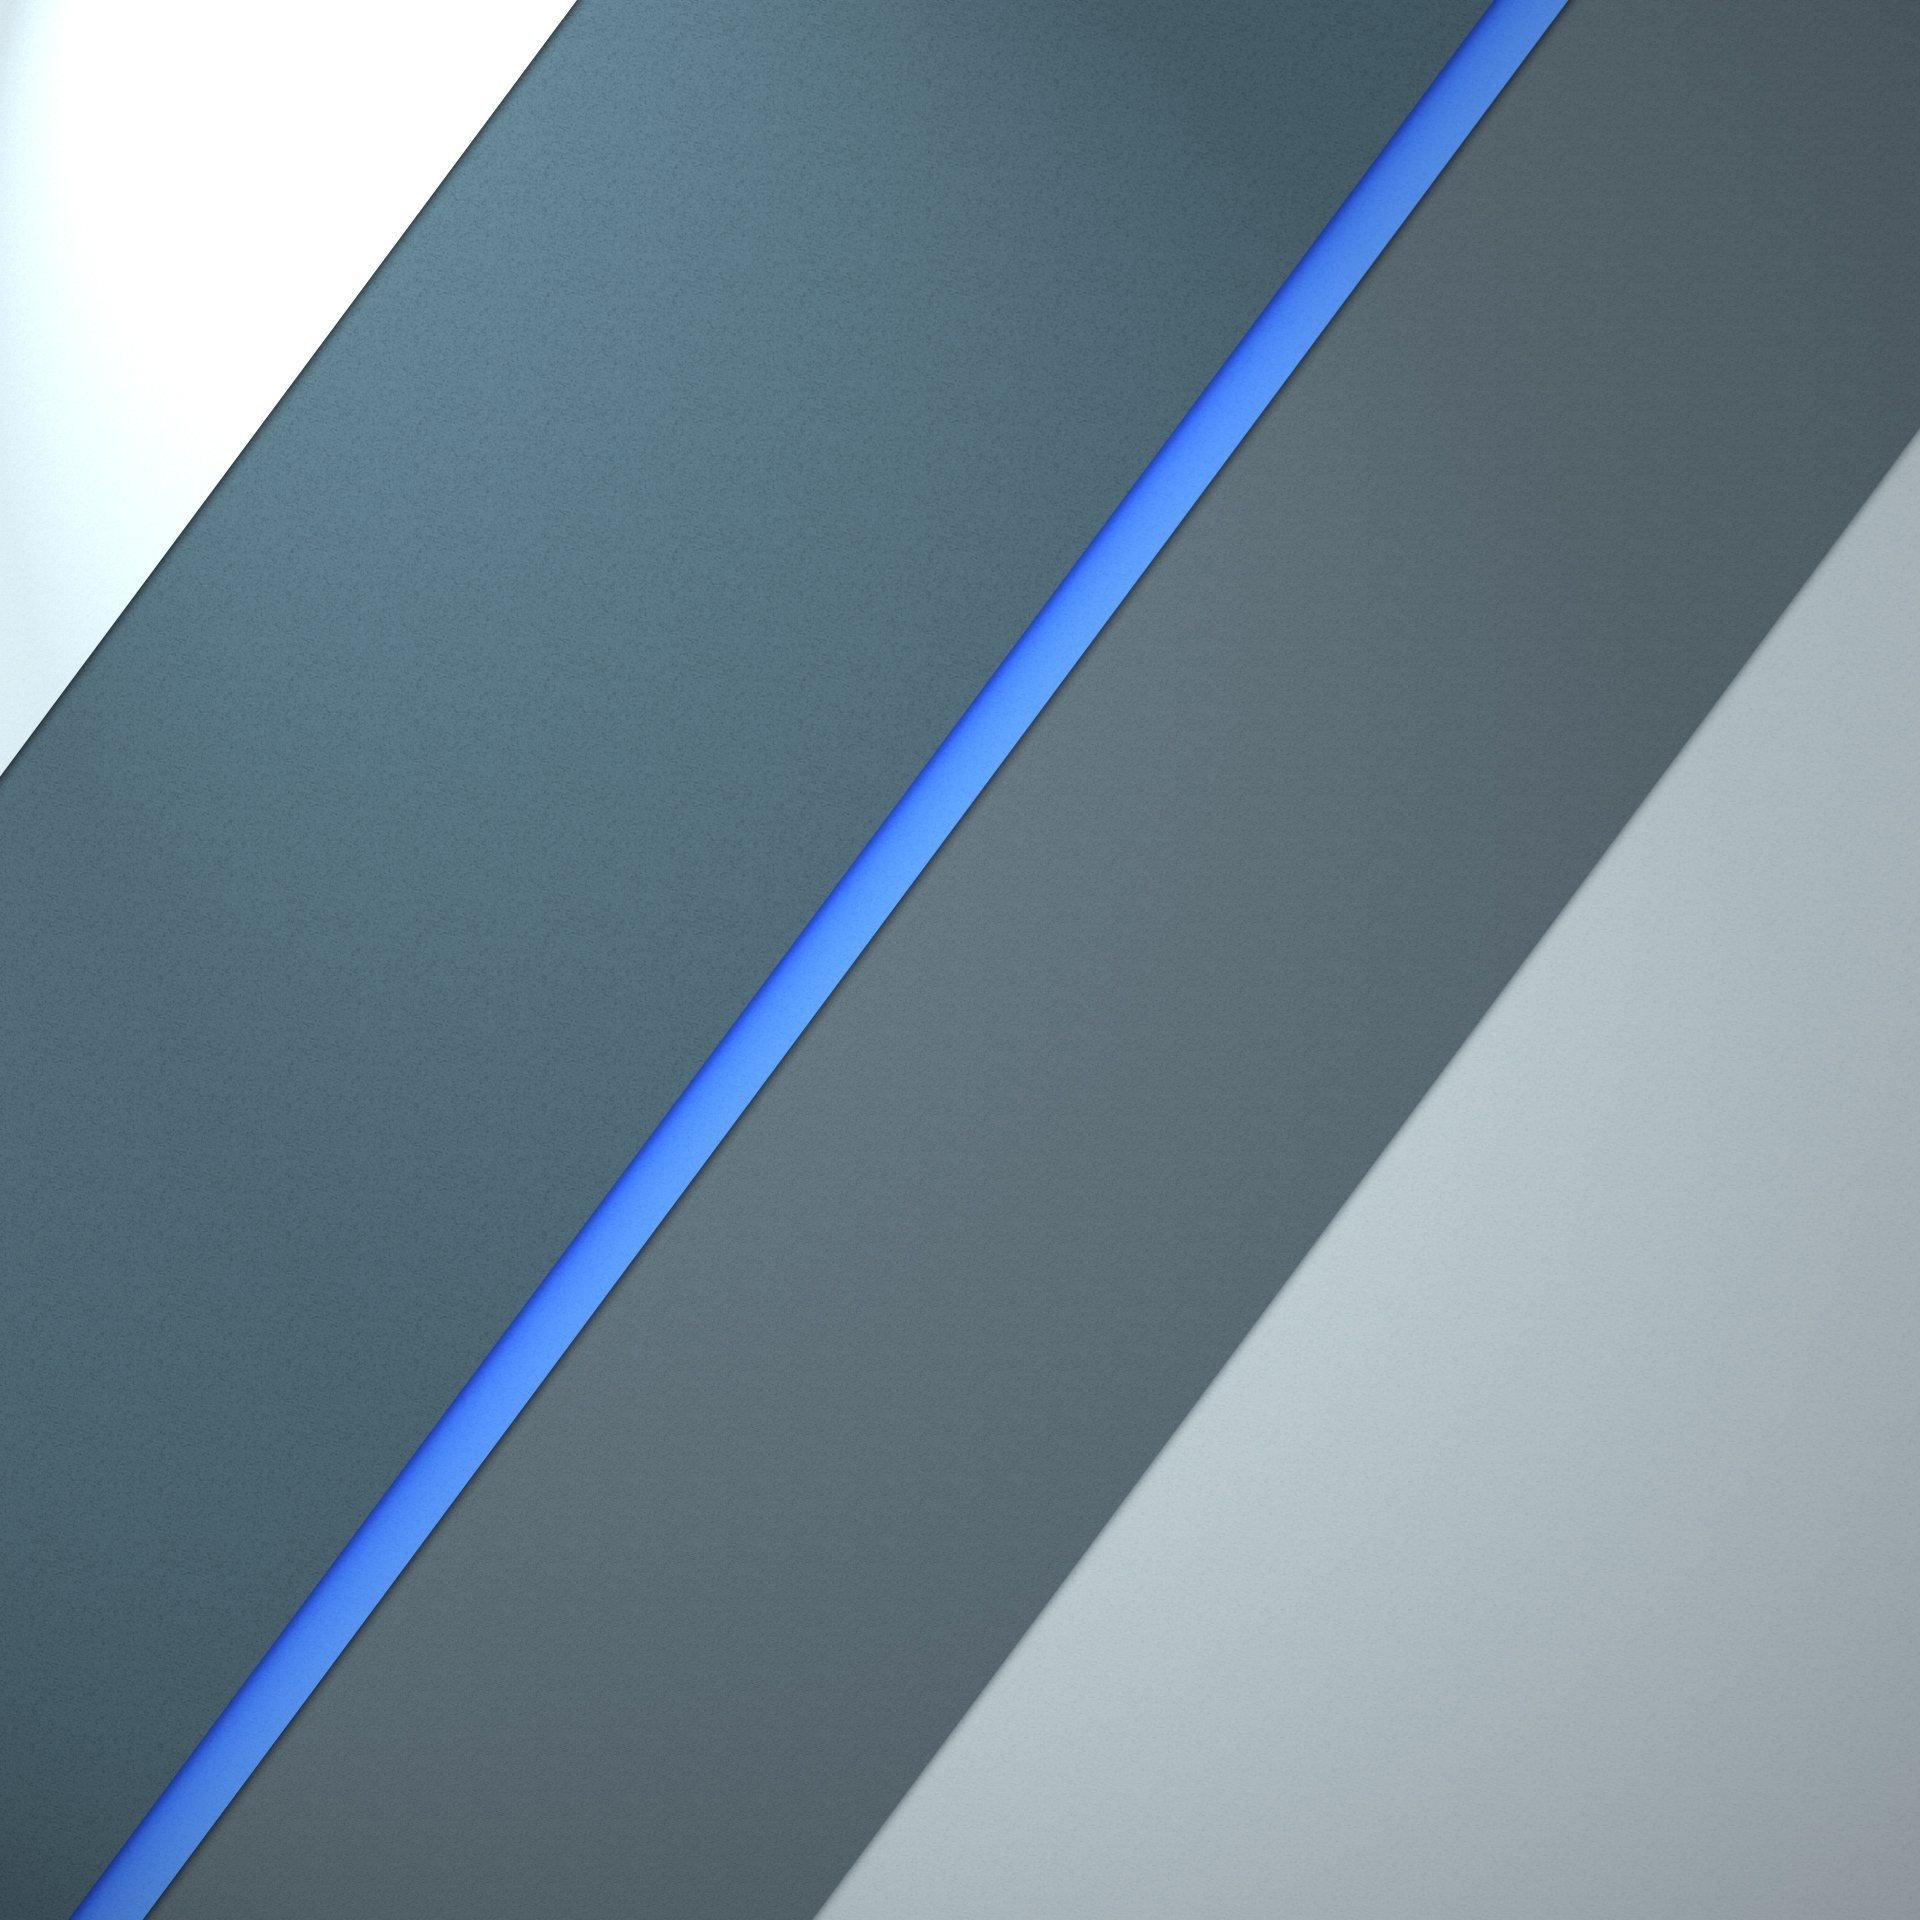 android 5.0 lollipop material design line abstraction silver blue